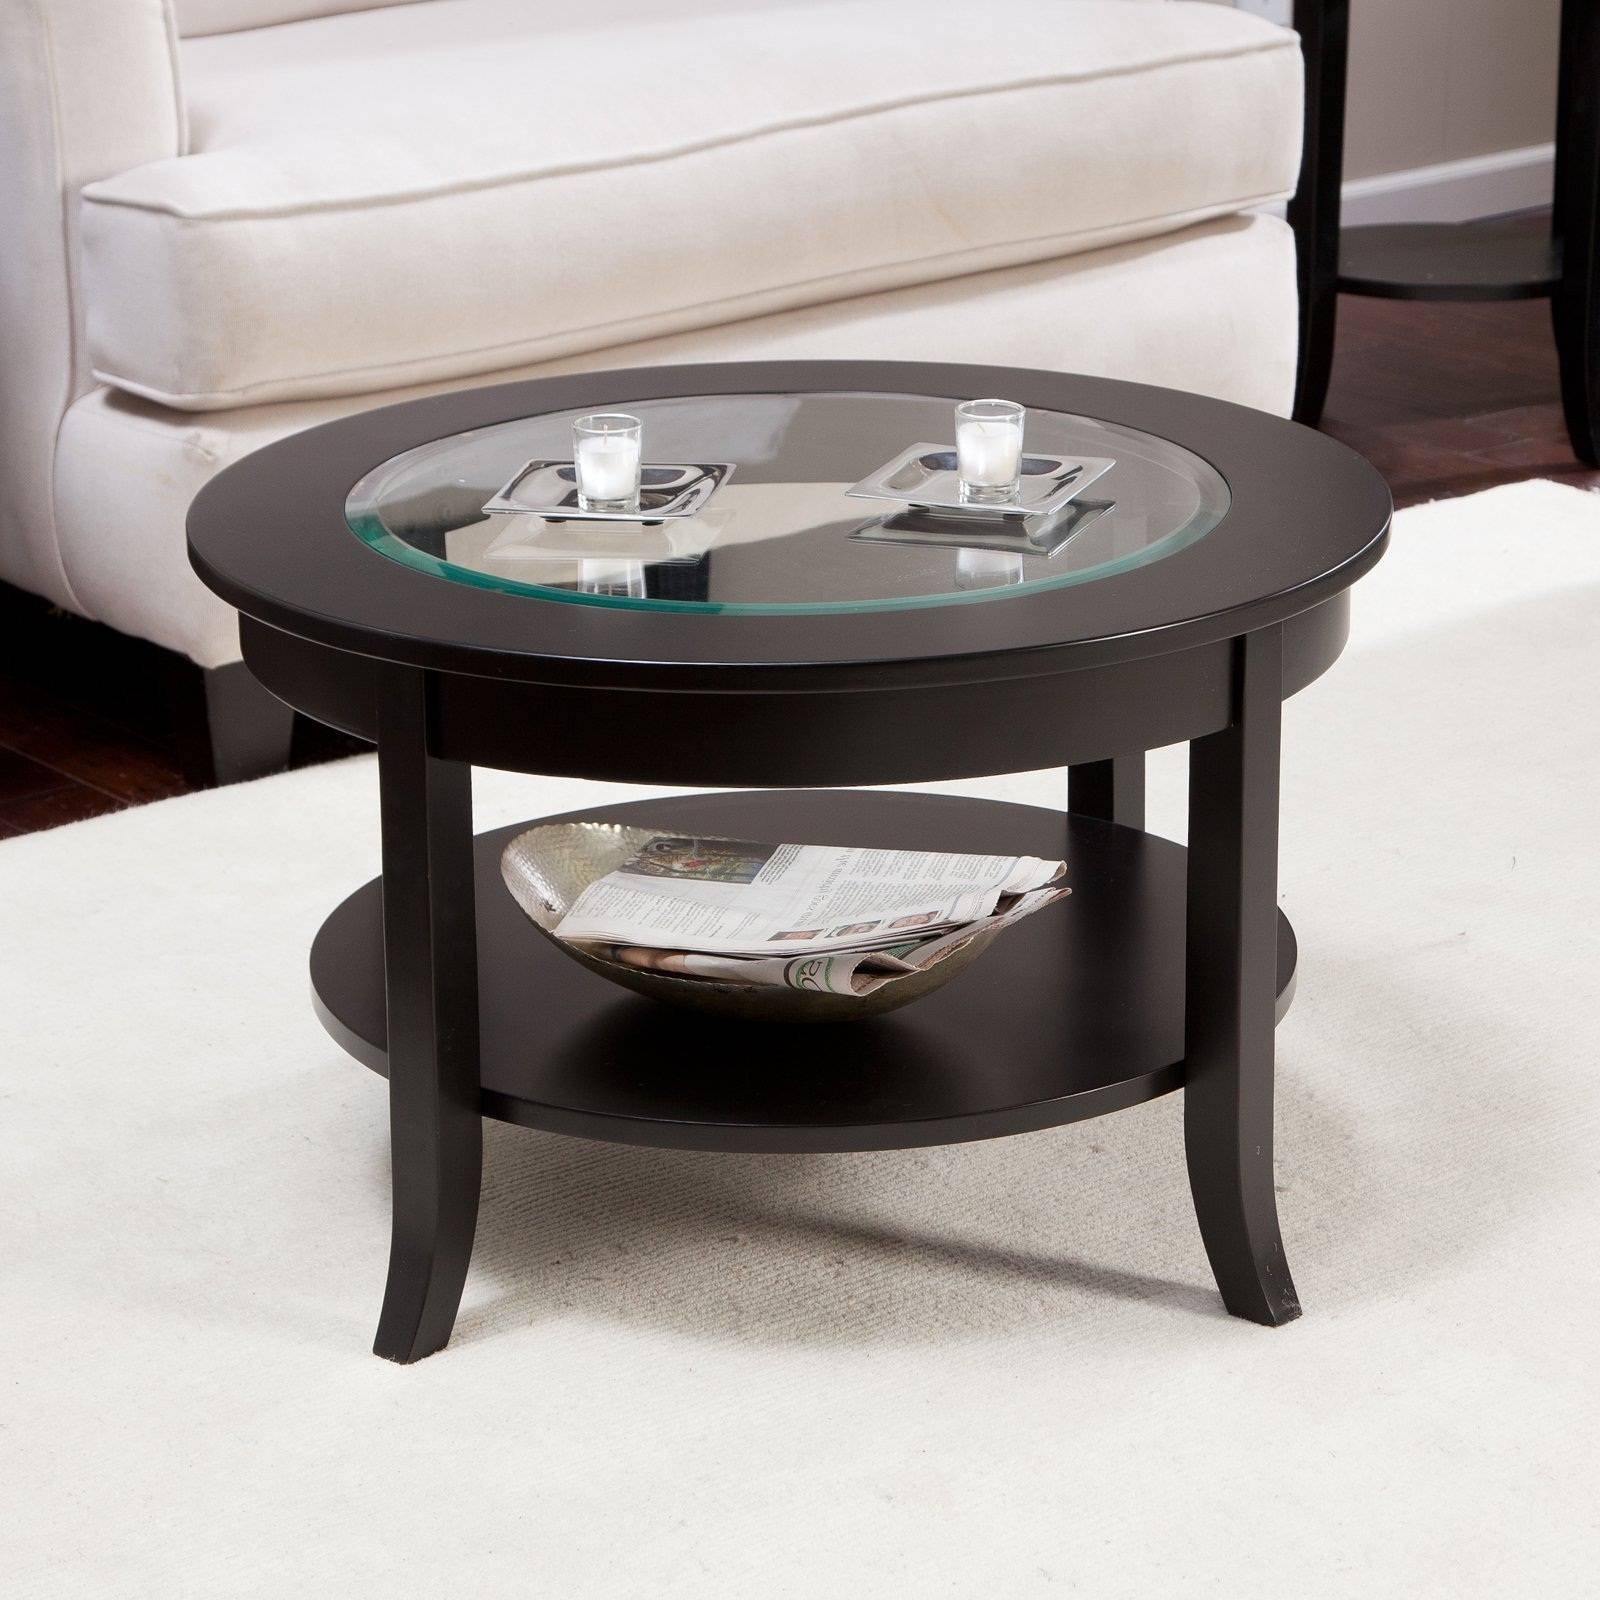 Genoa Round Coffee Table With Glass Top | Coffee Tables Decoration inside Circular Glass Coffee Tables (Image 11 of 30)